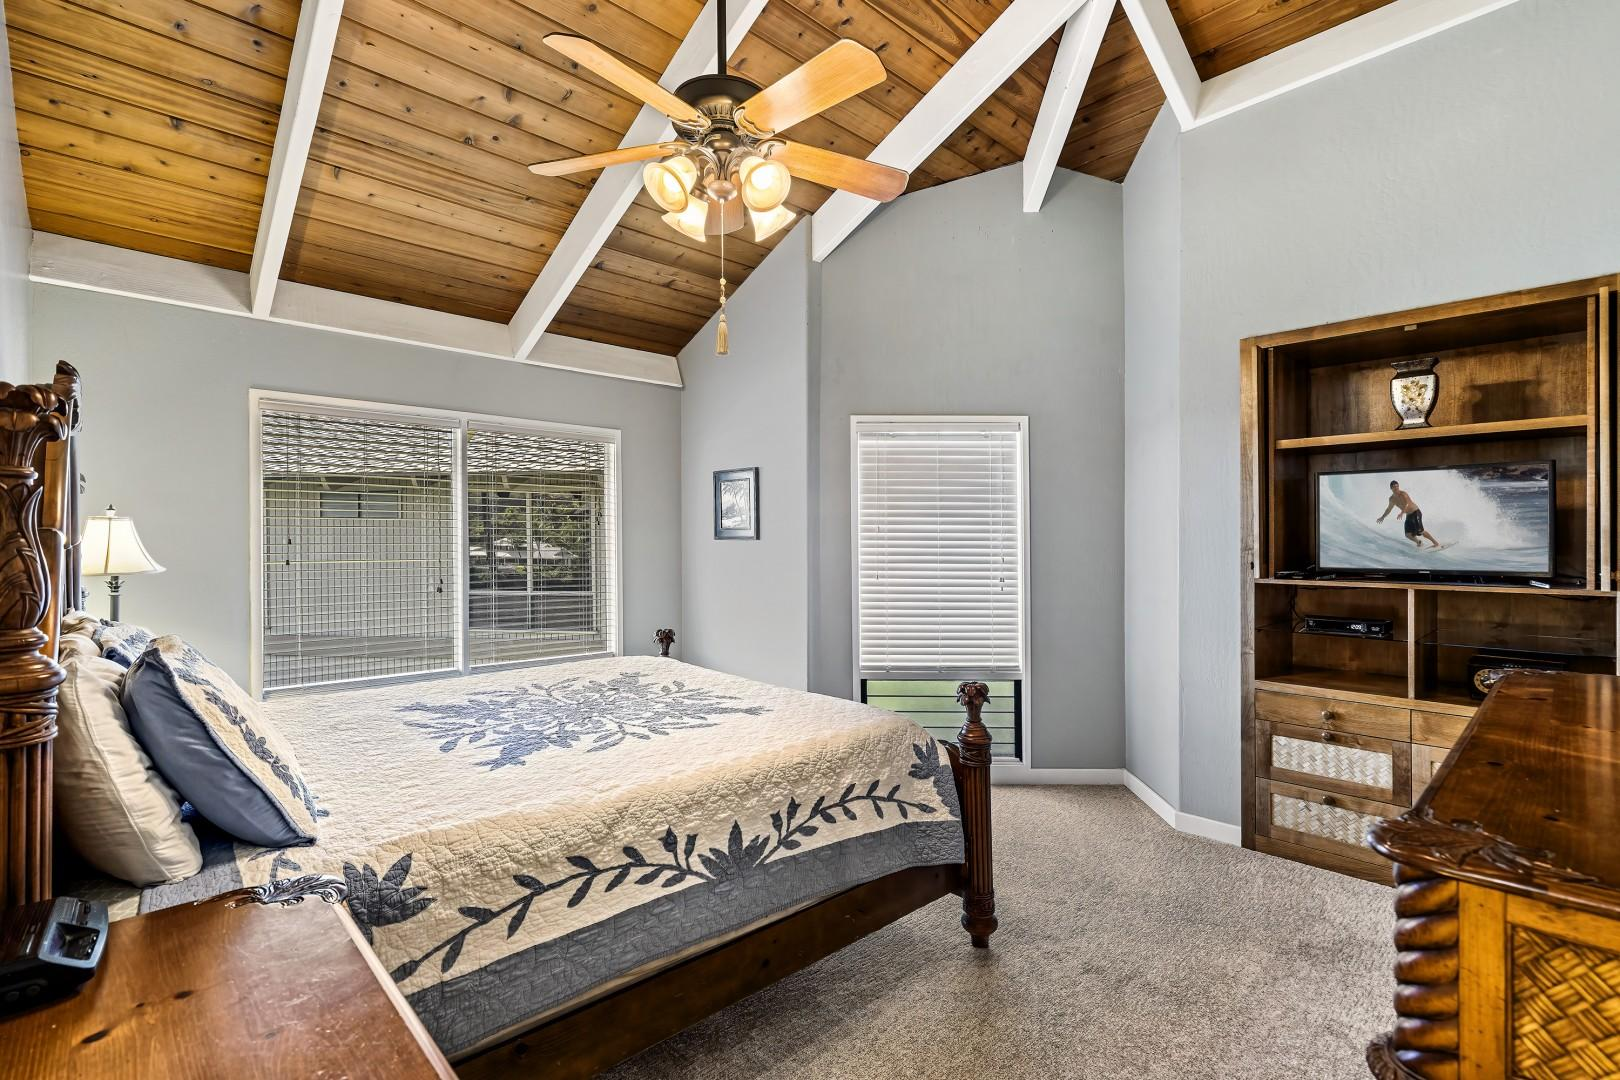 Vaulted ceiling can be found in the Master bedroom as well!